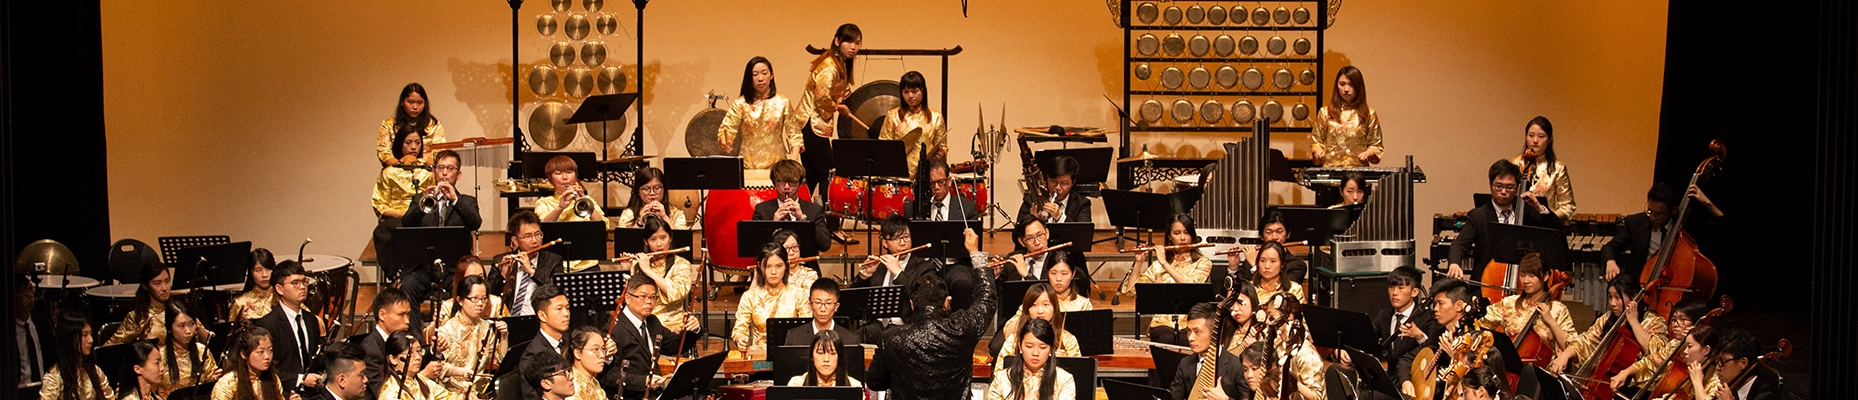 EdUHK Chinese Orchestra Annual Concert 2018_2_edit